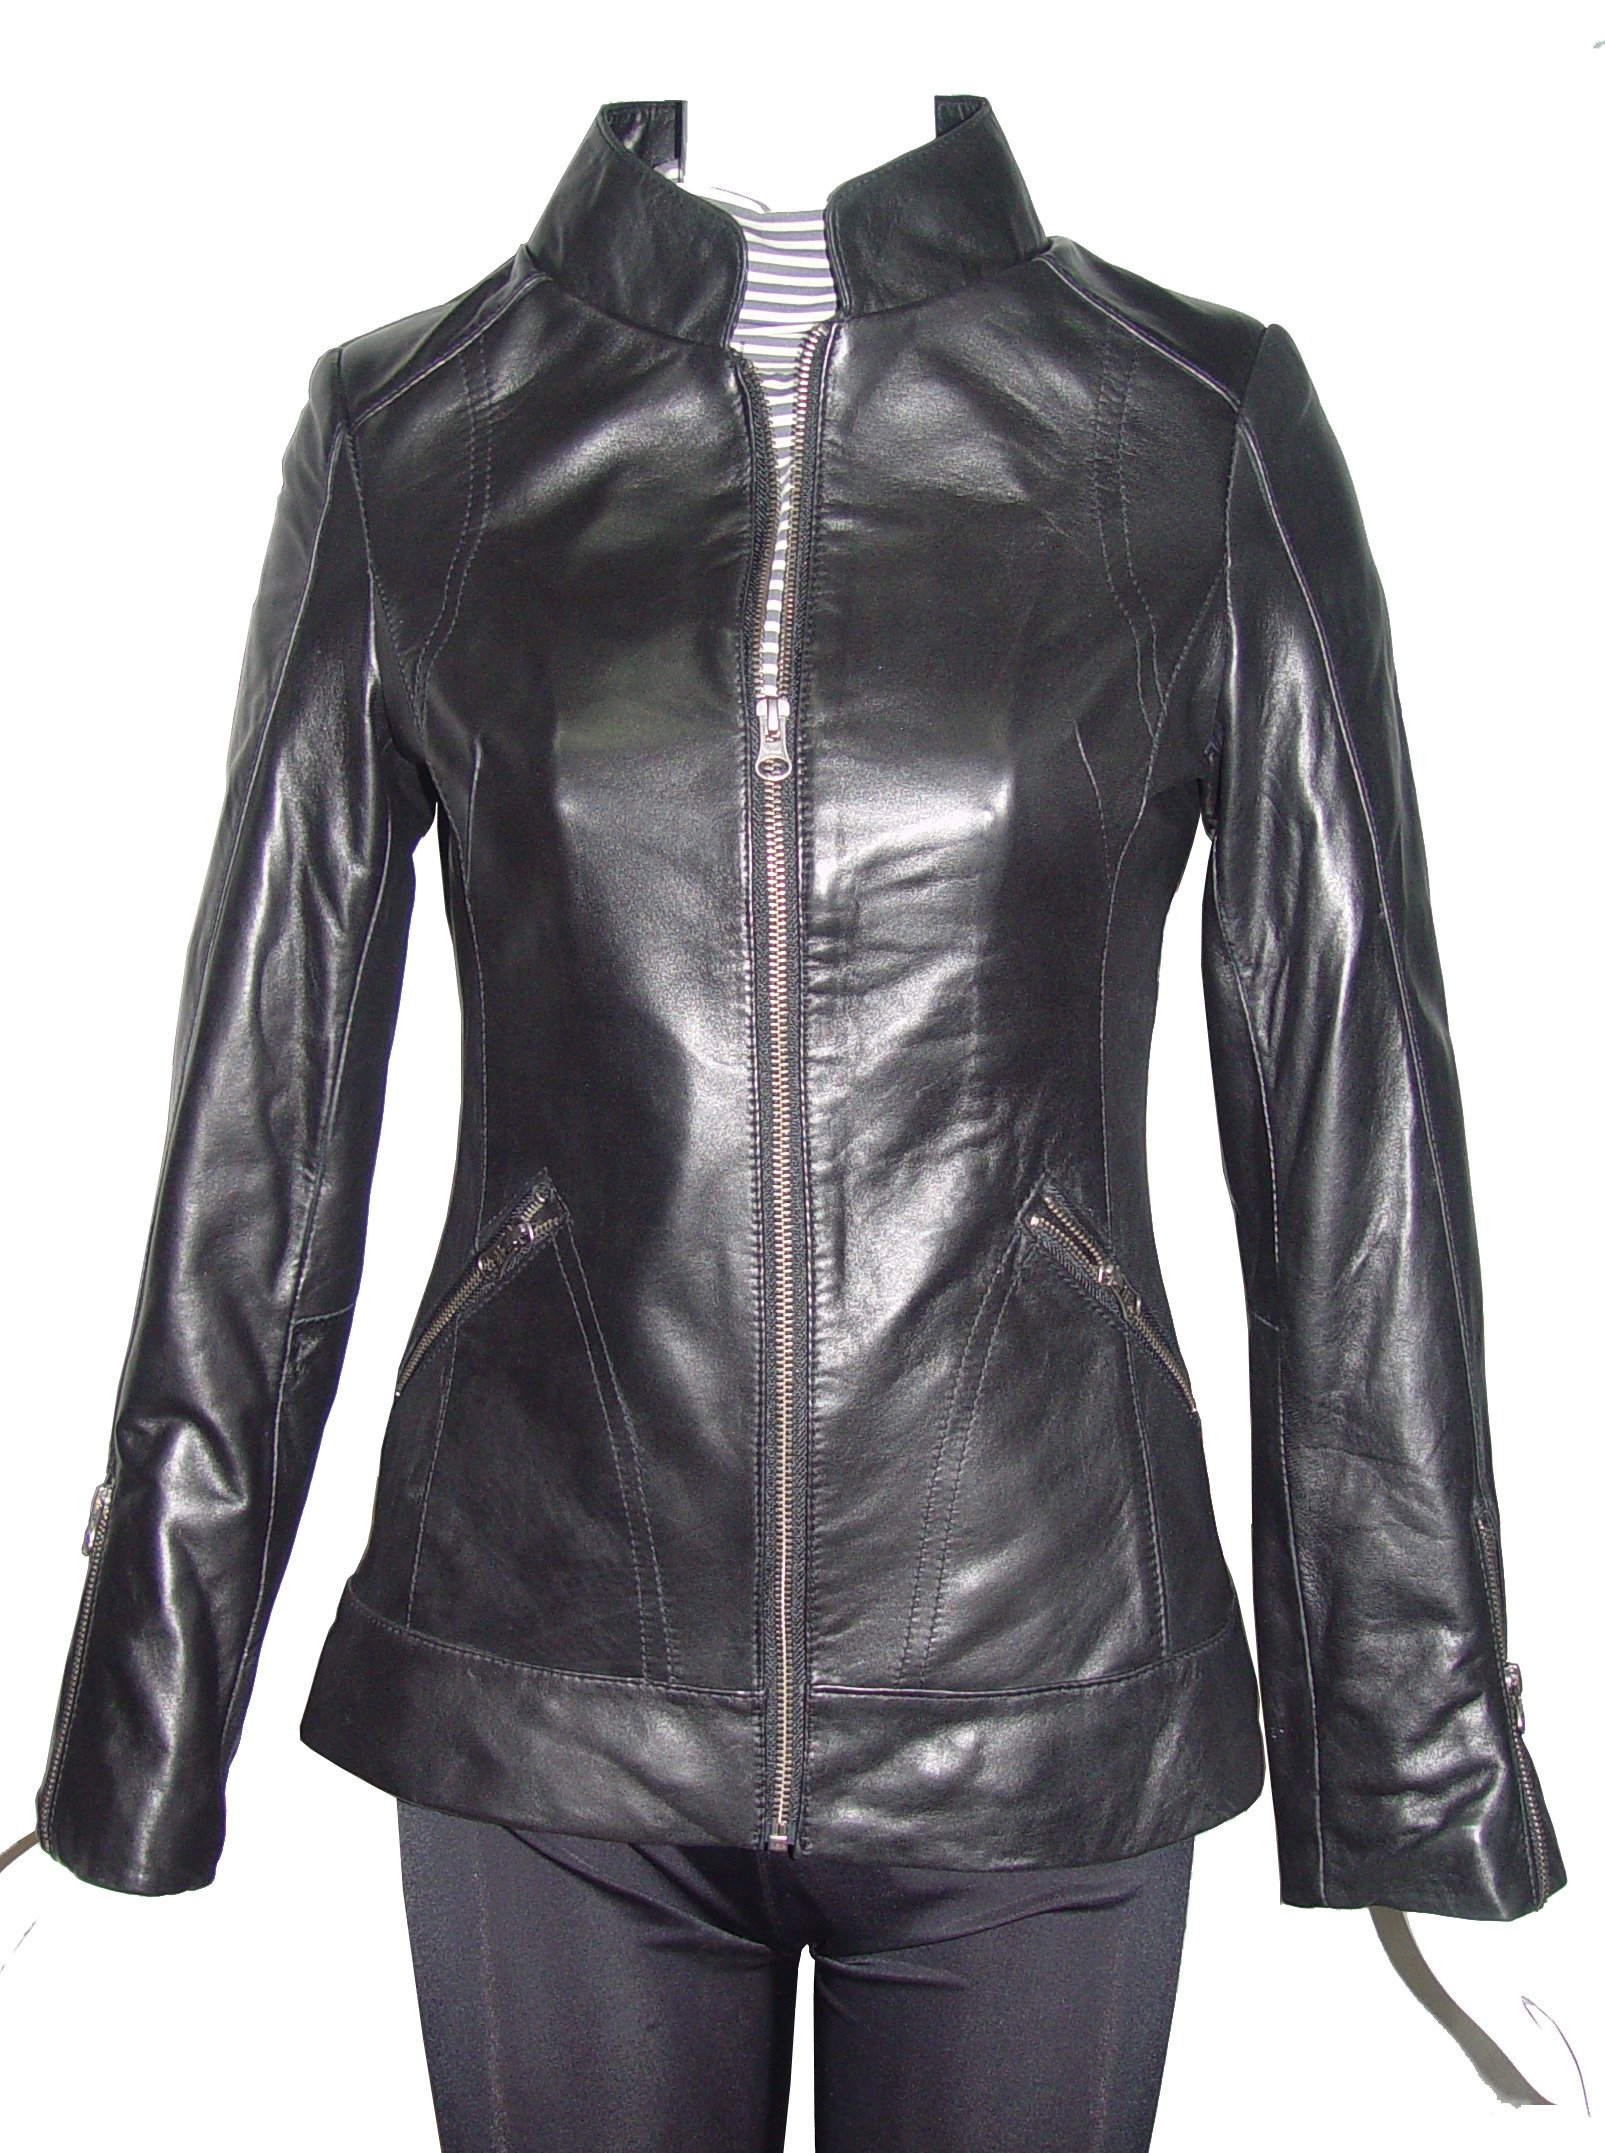 Nettailor 4167 Real Leather Jackets Best Cool Stylish Expensive Lining